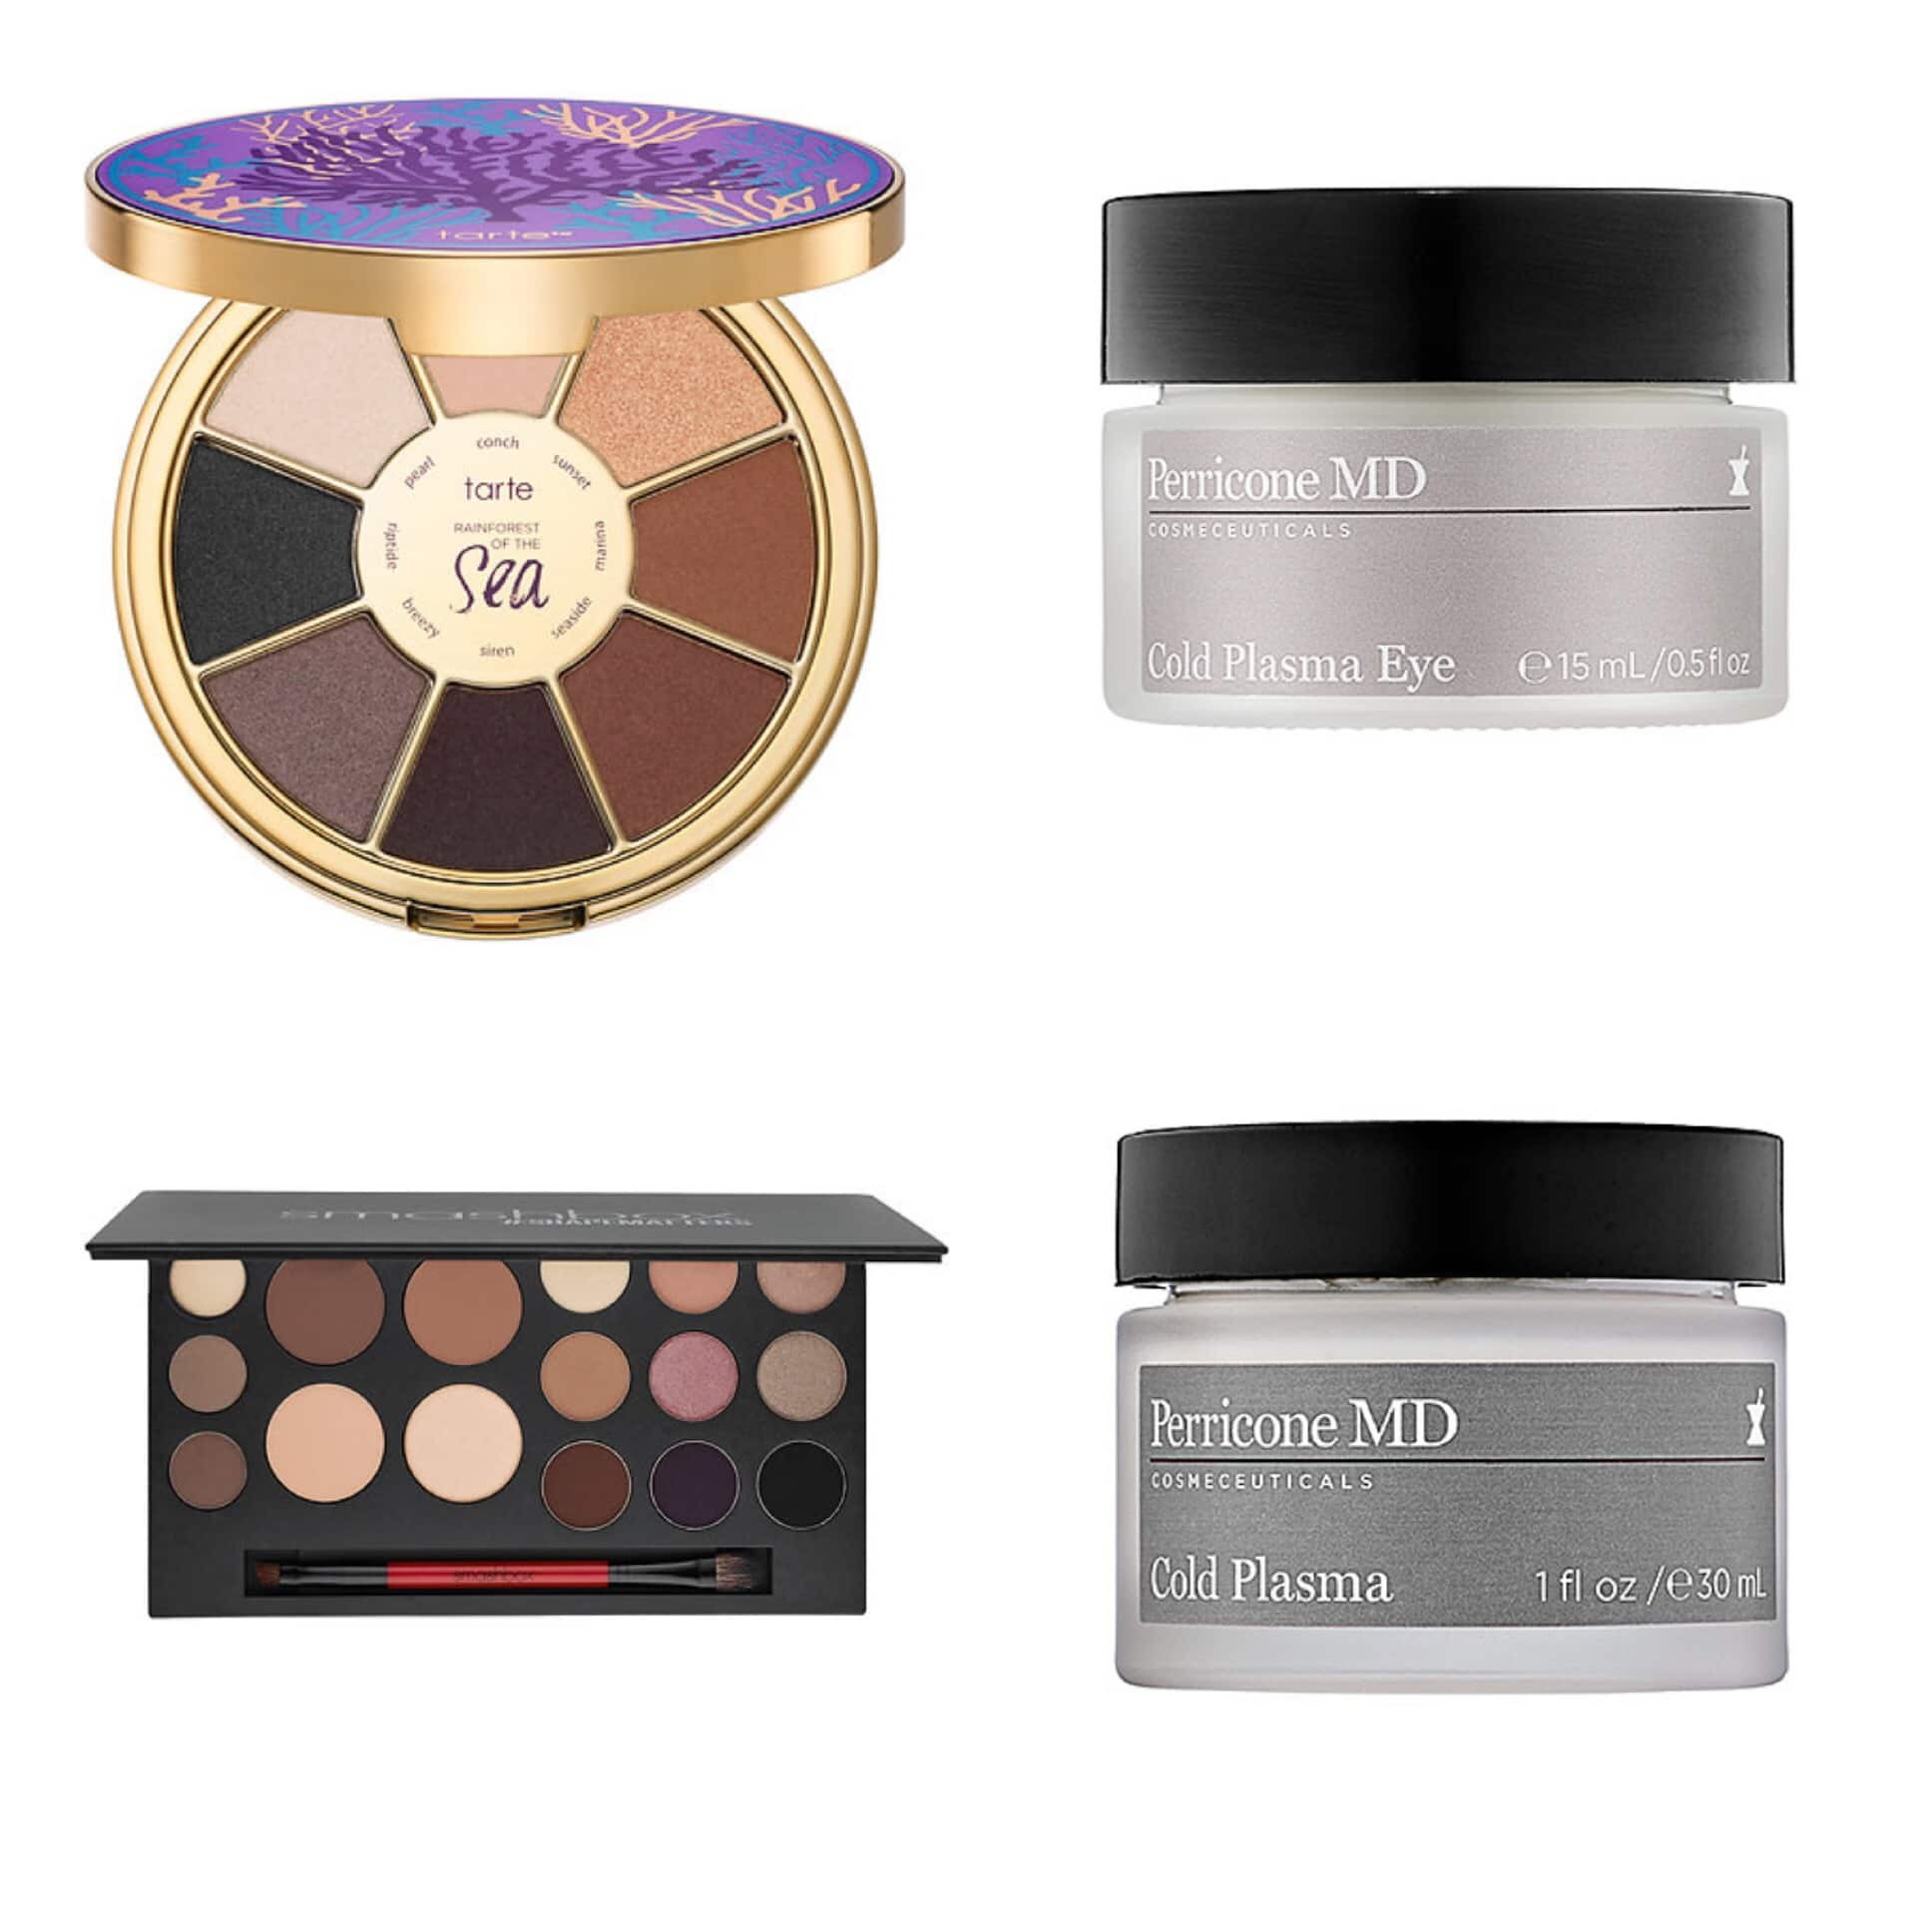 Sephora Weekly Wow - Weekly Sale 50% off Select Items